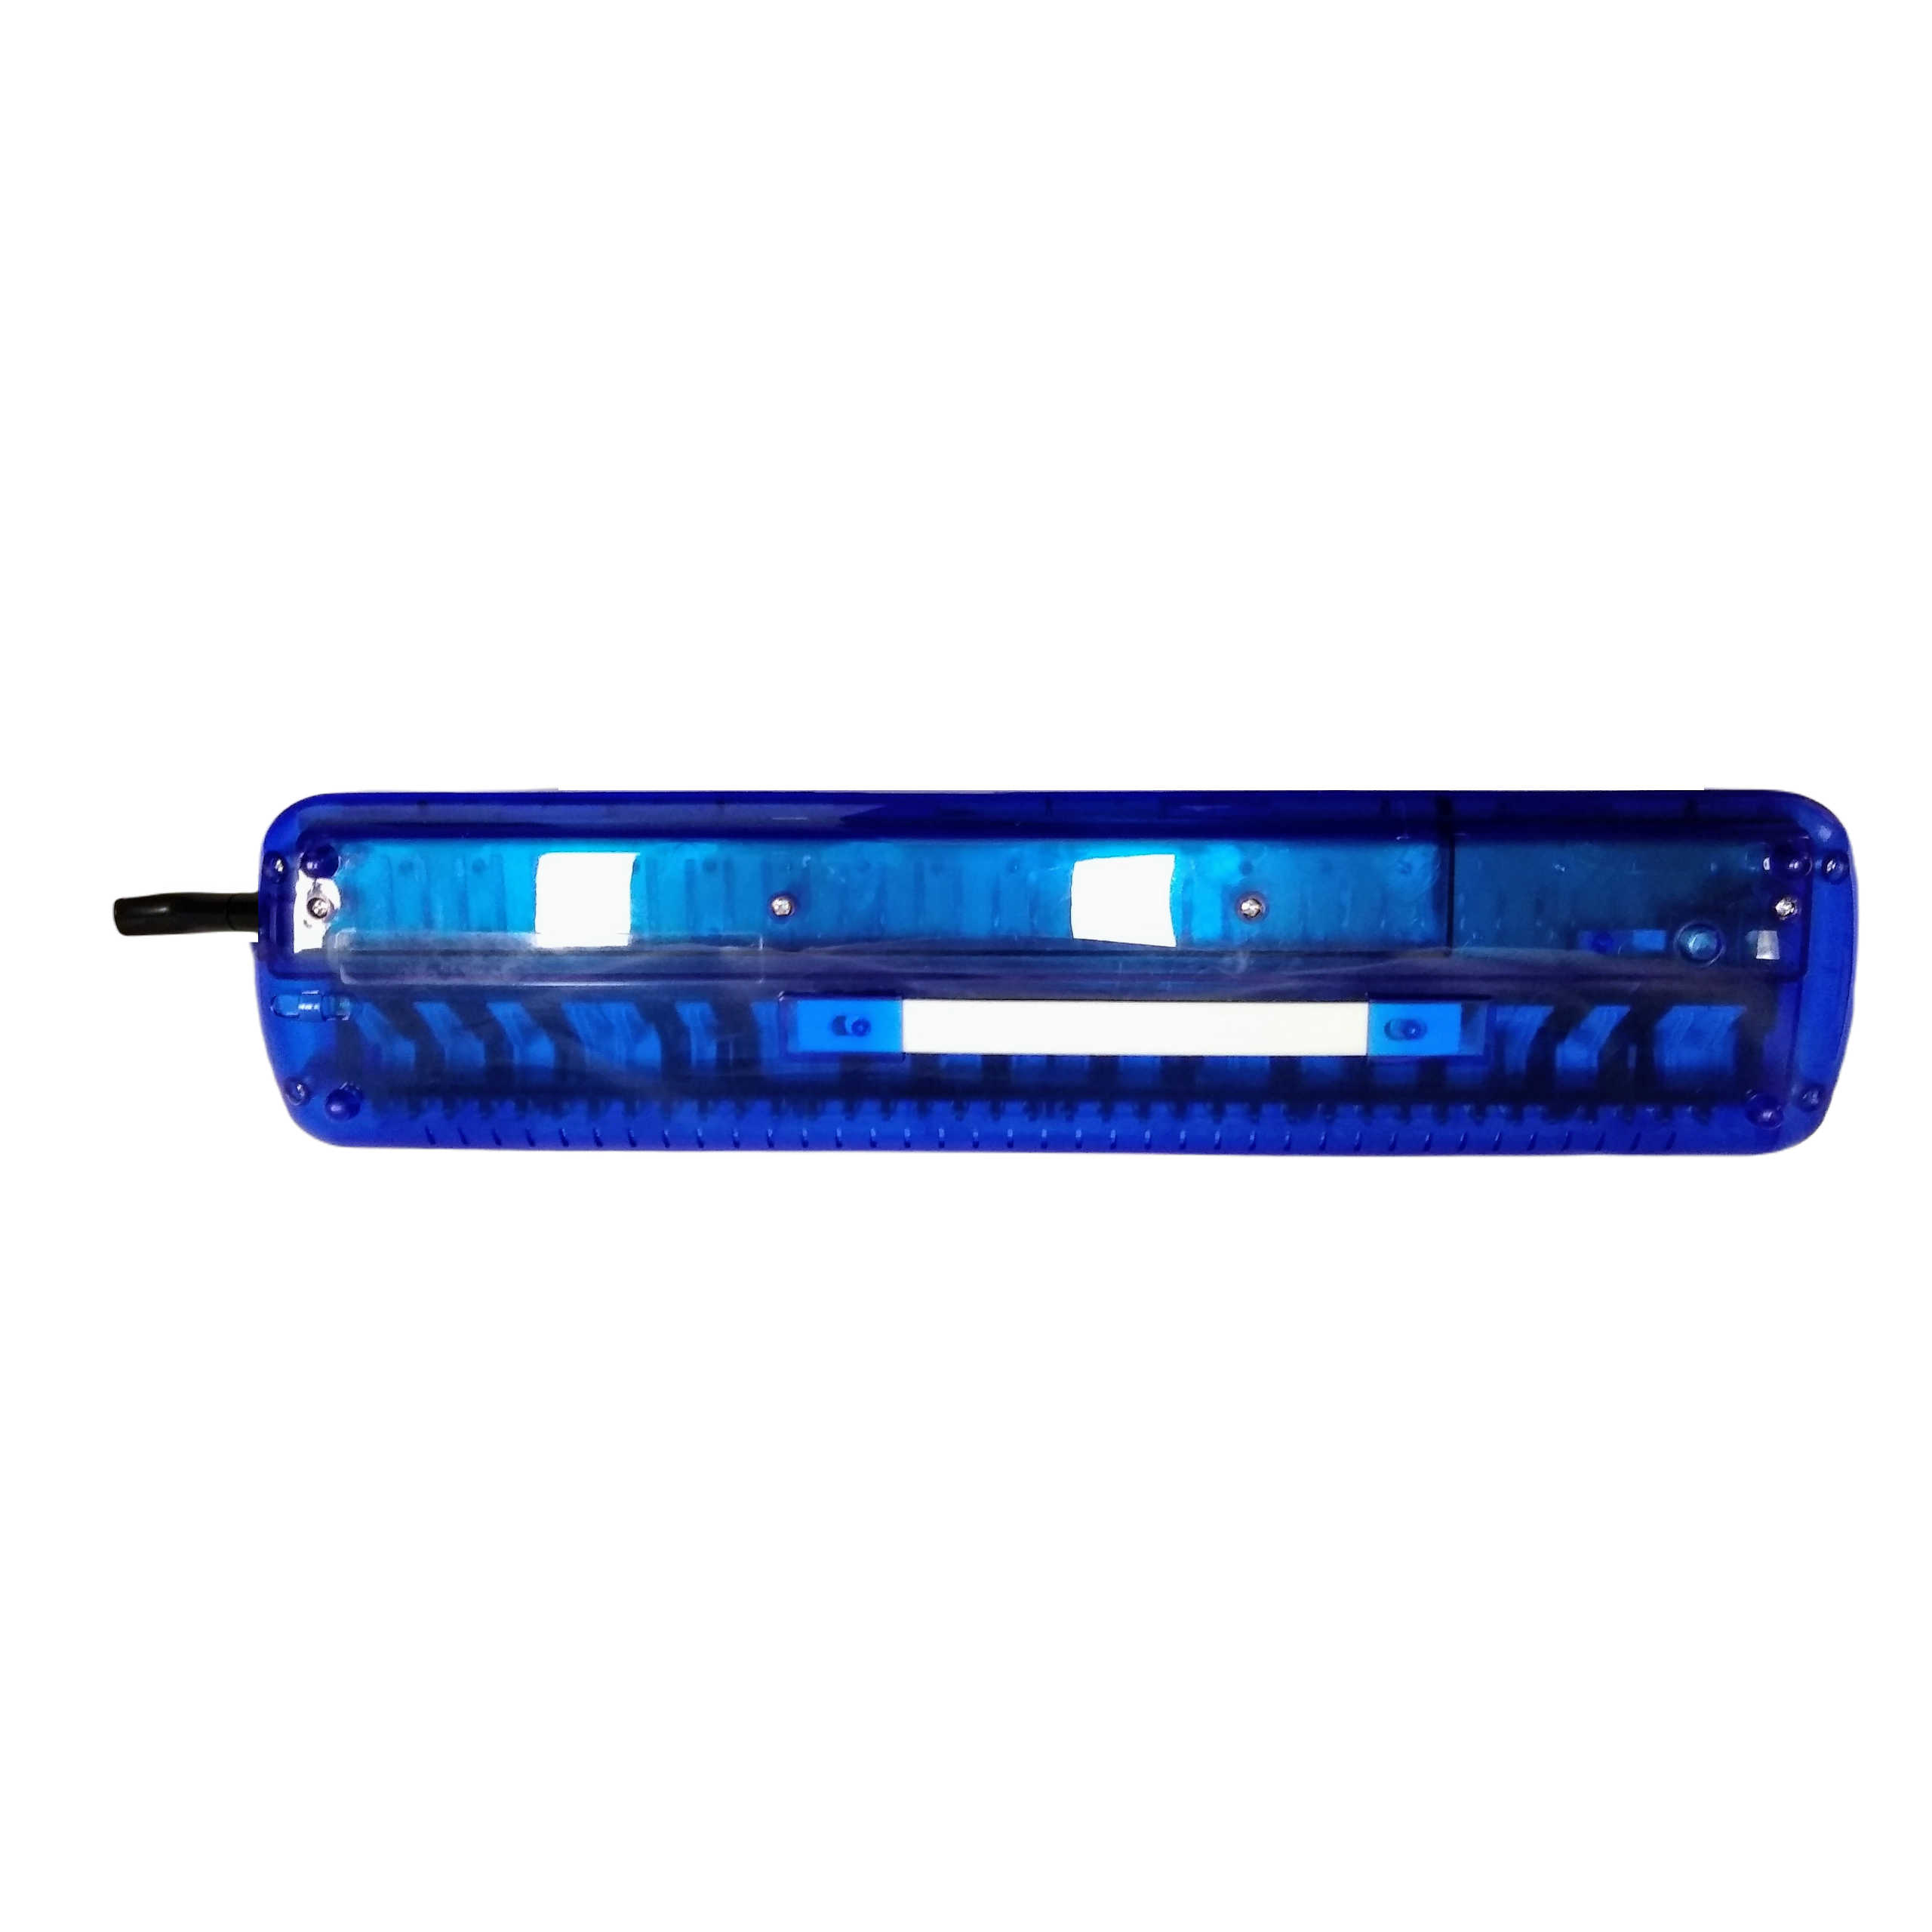 Excalibur 37 Note Transparent Pro Series Plumb Midnight Blue Transparent With Learning System